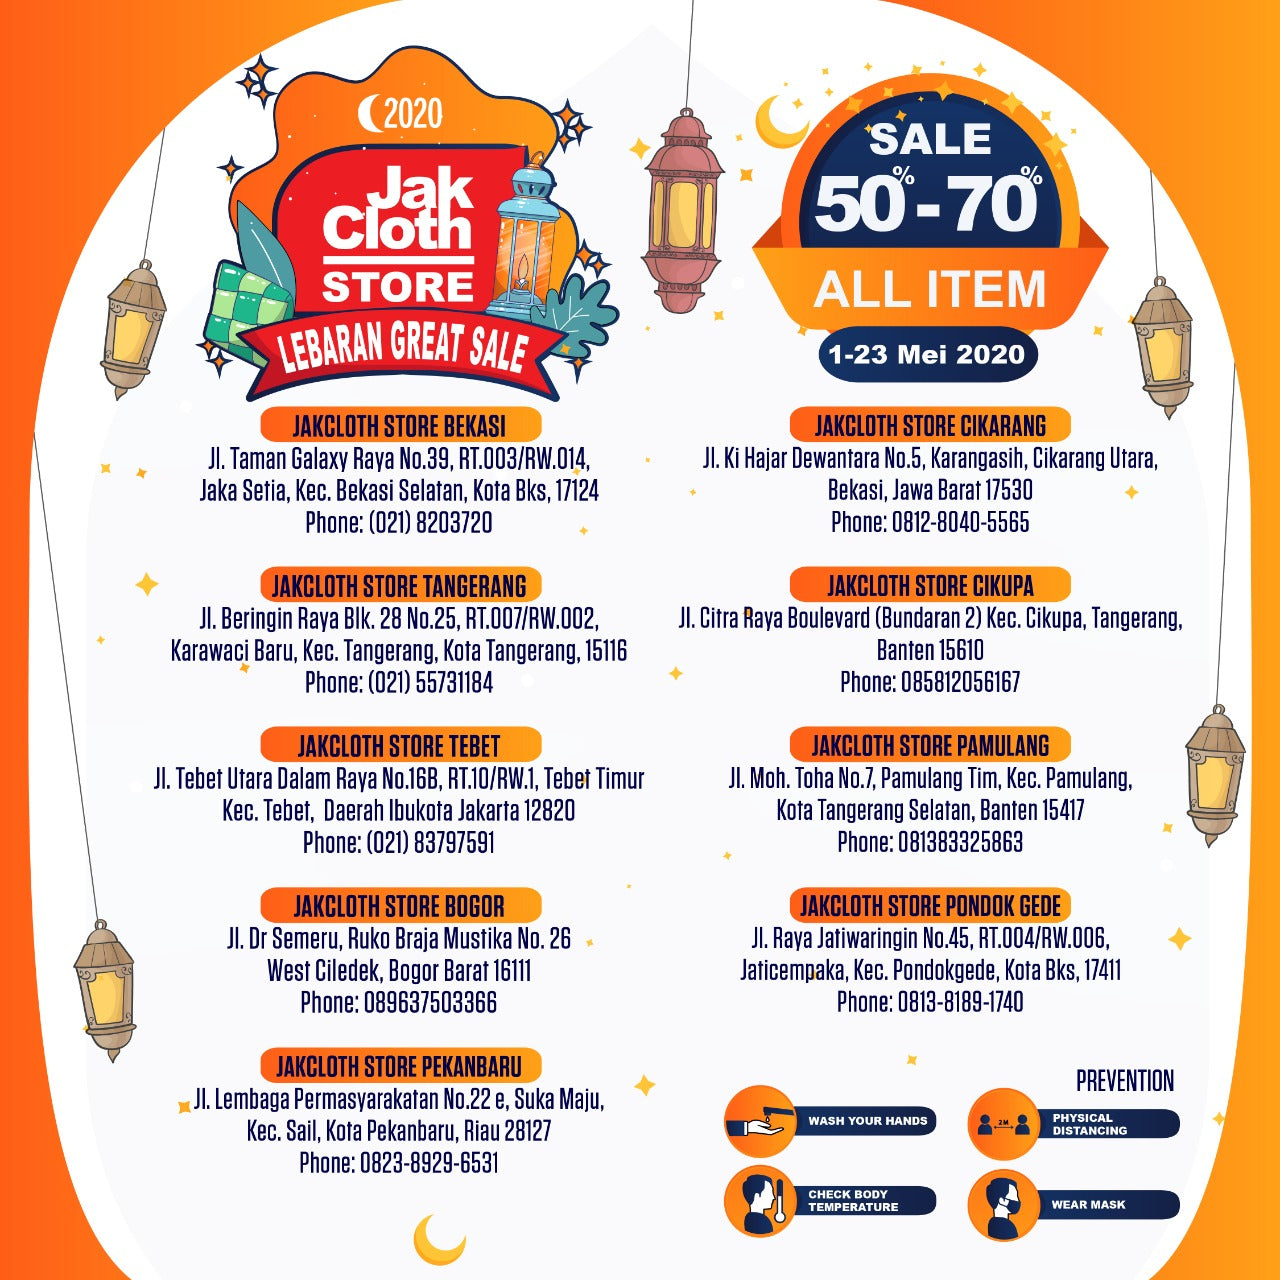 Jakcloth Store Lebaran Great Sale